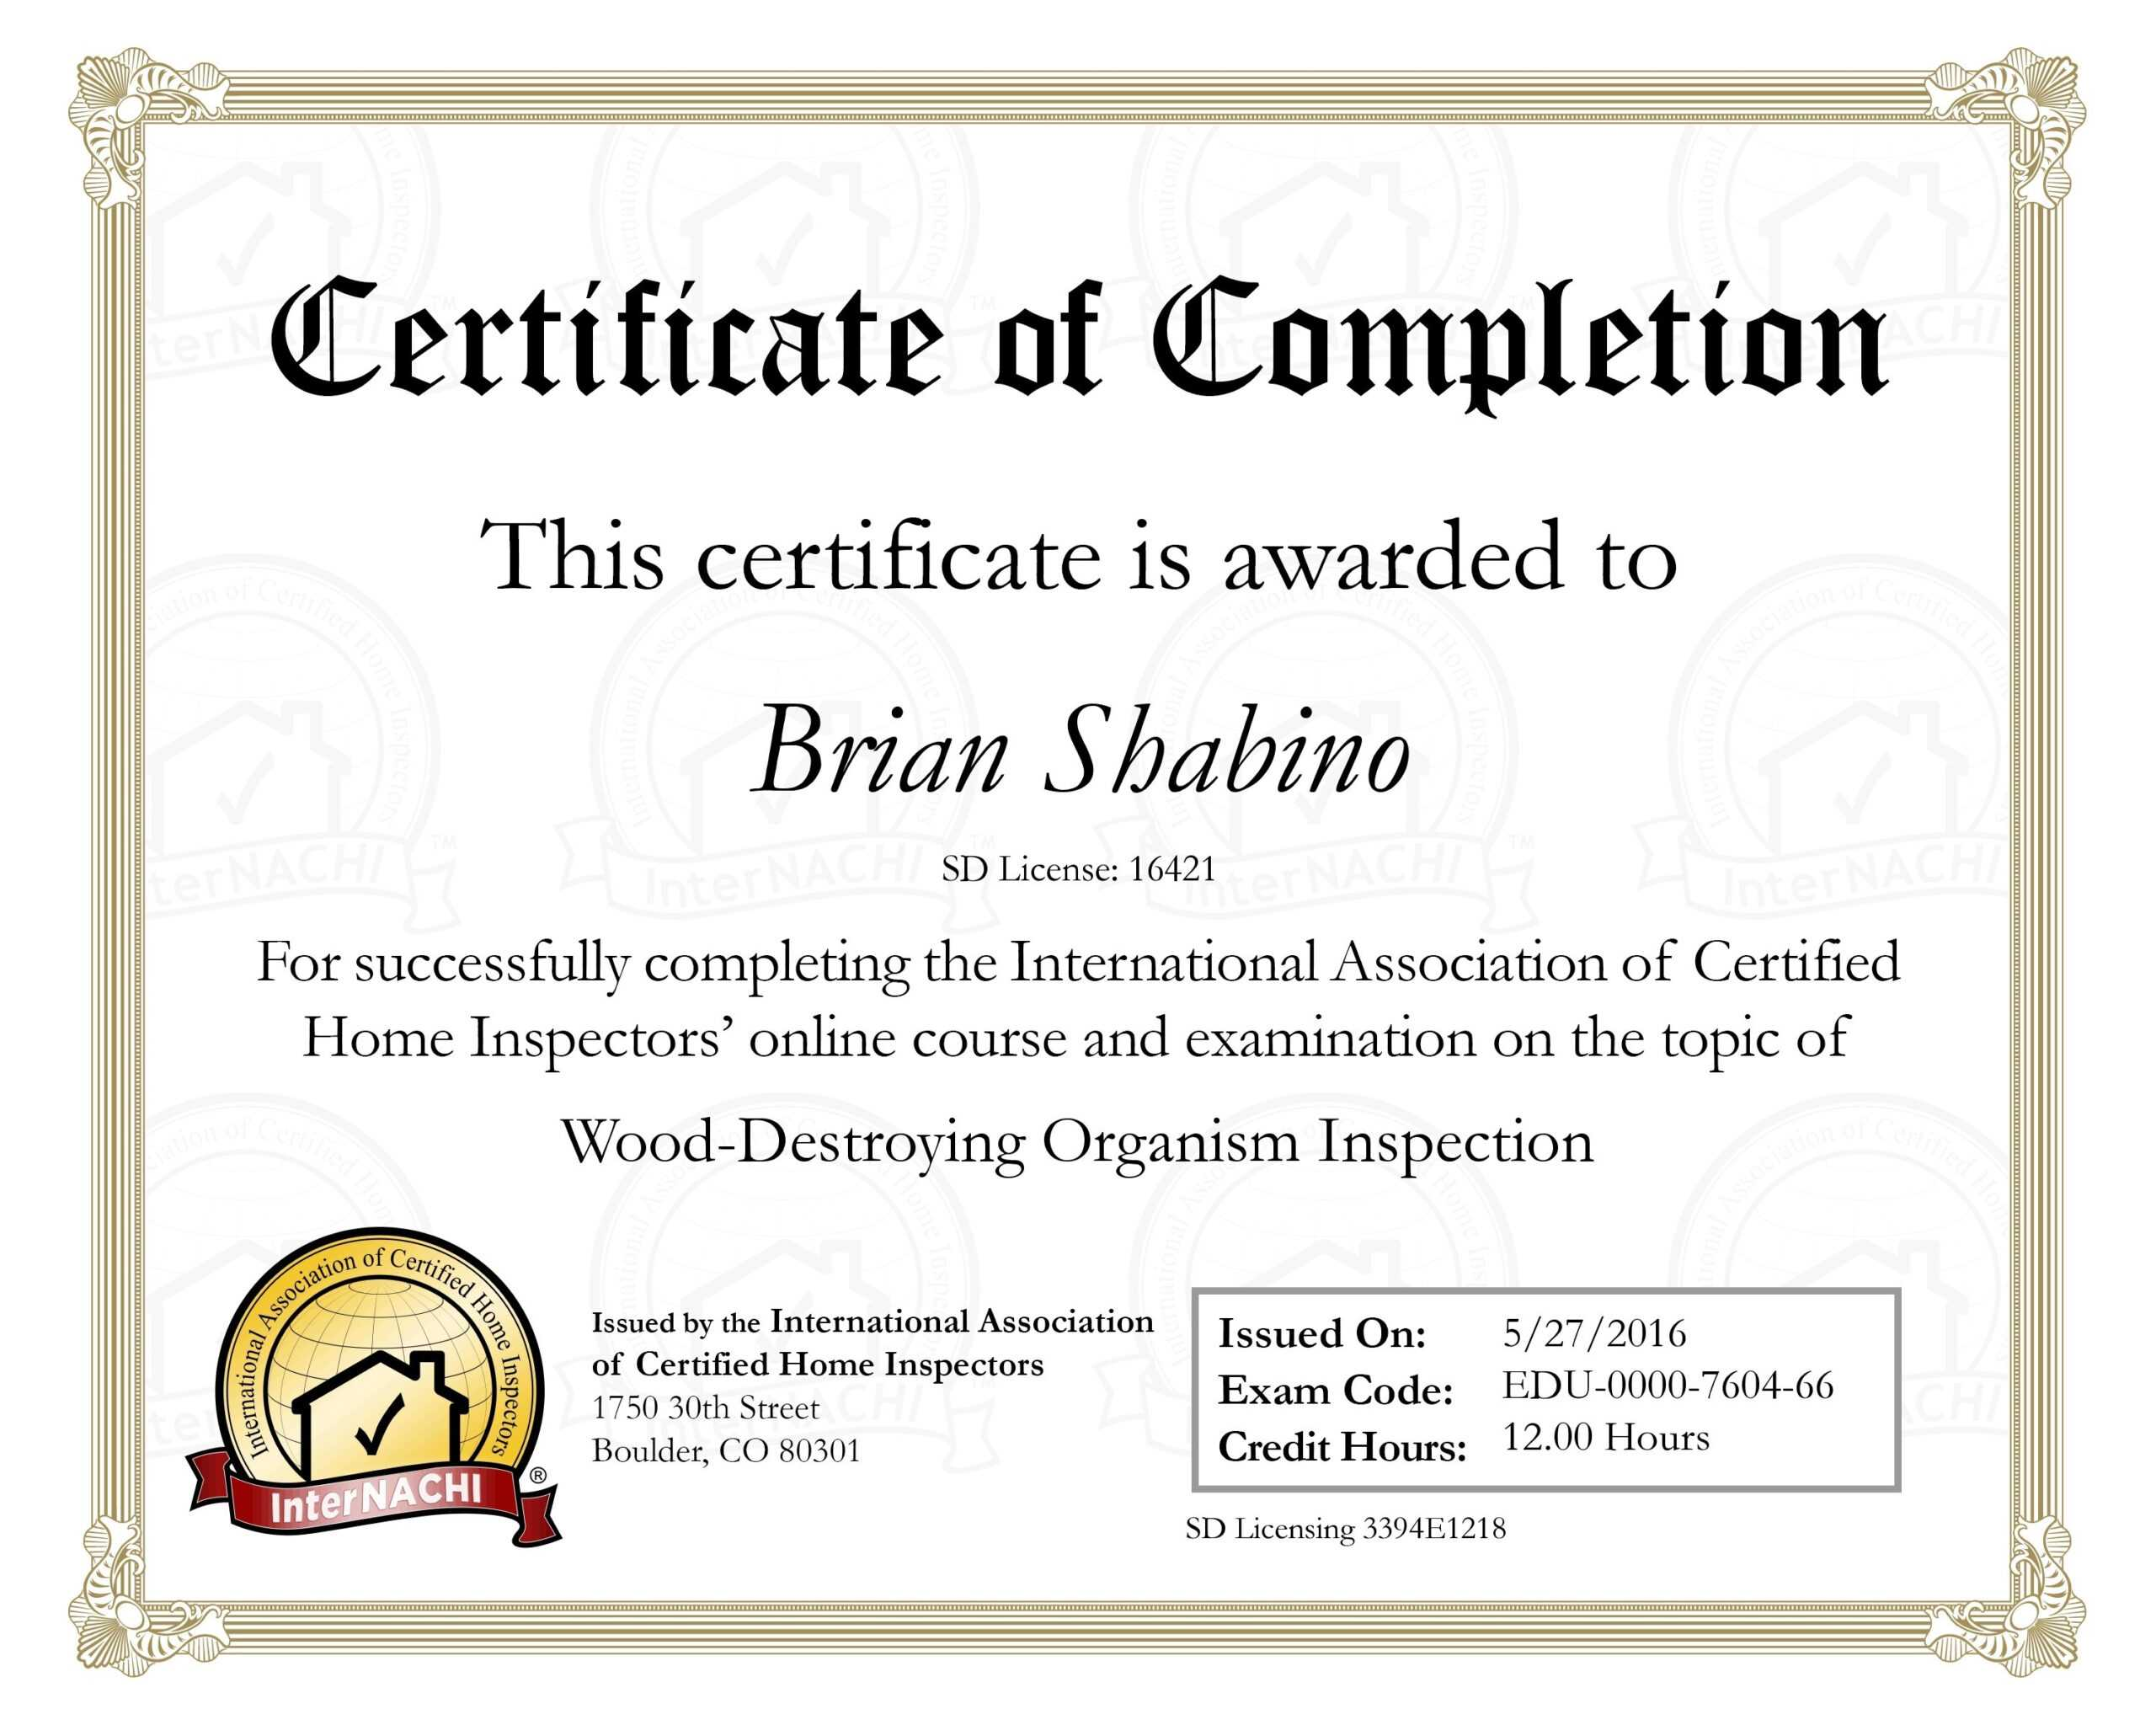 10 Template For A Certificate Of Completion | Business Letter Inside Certificate Of License Template